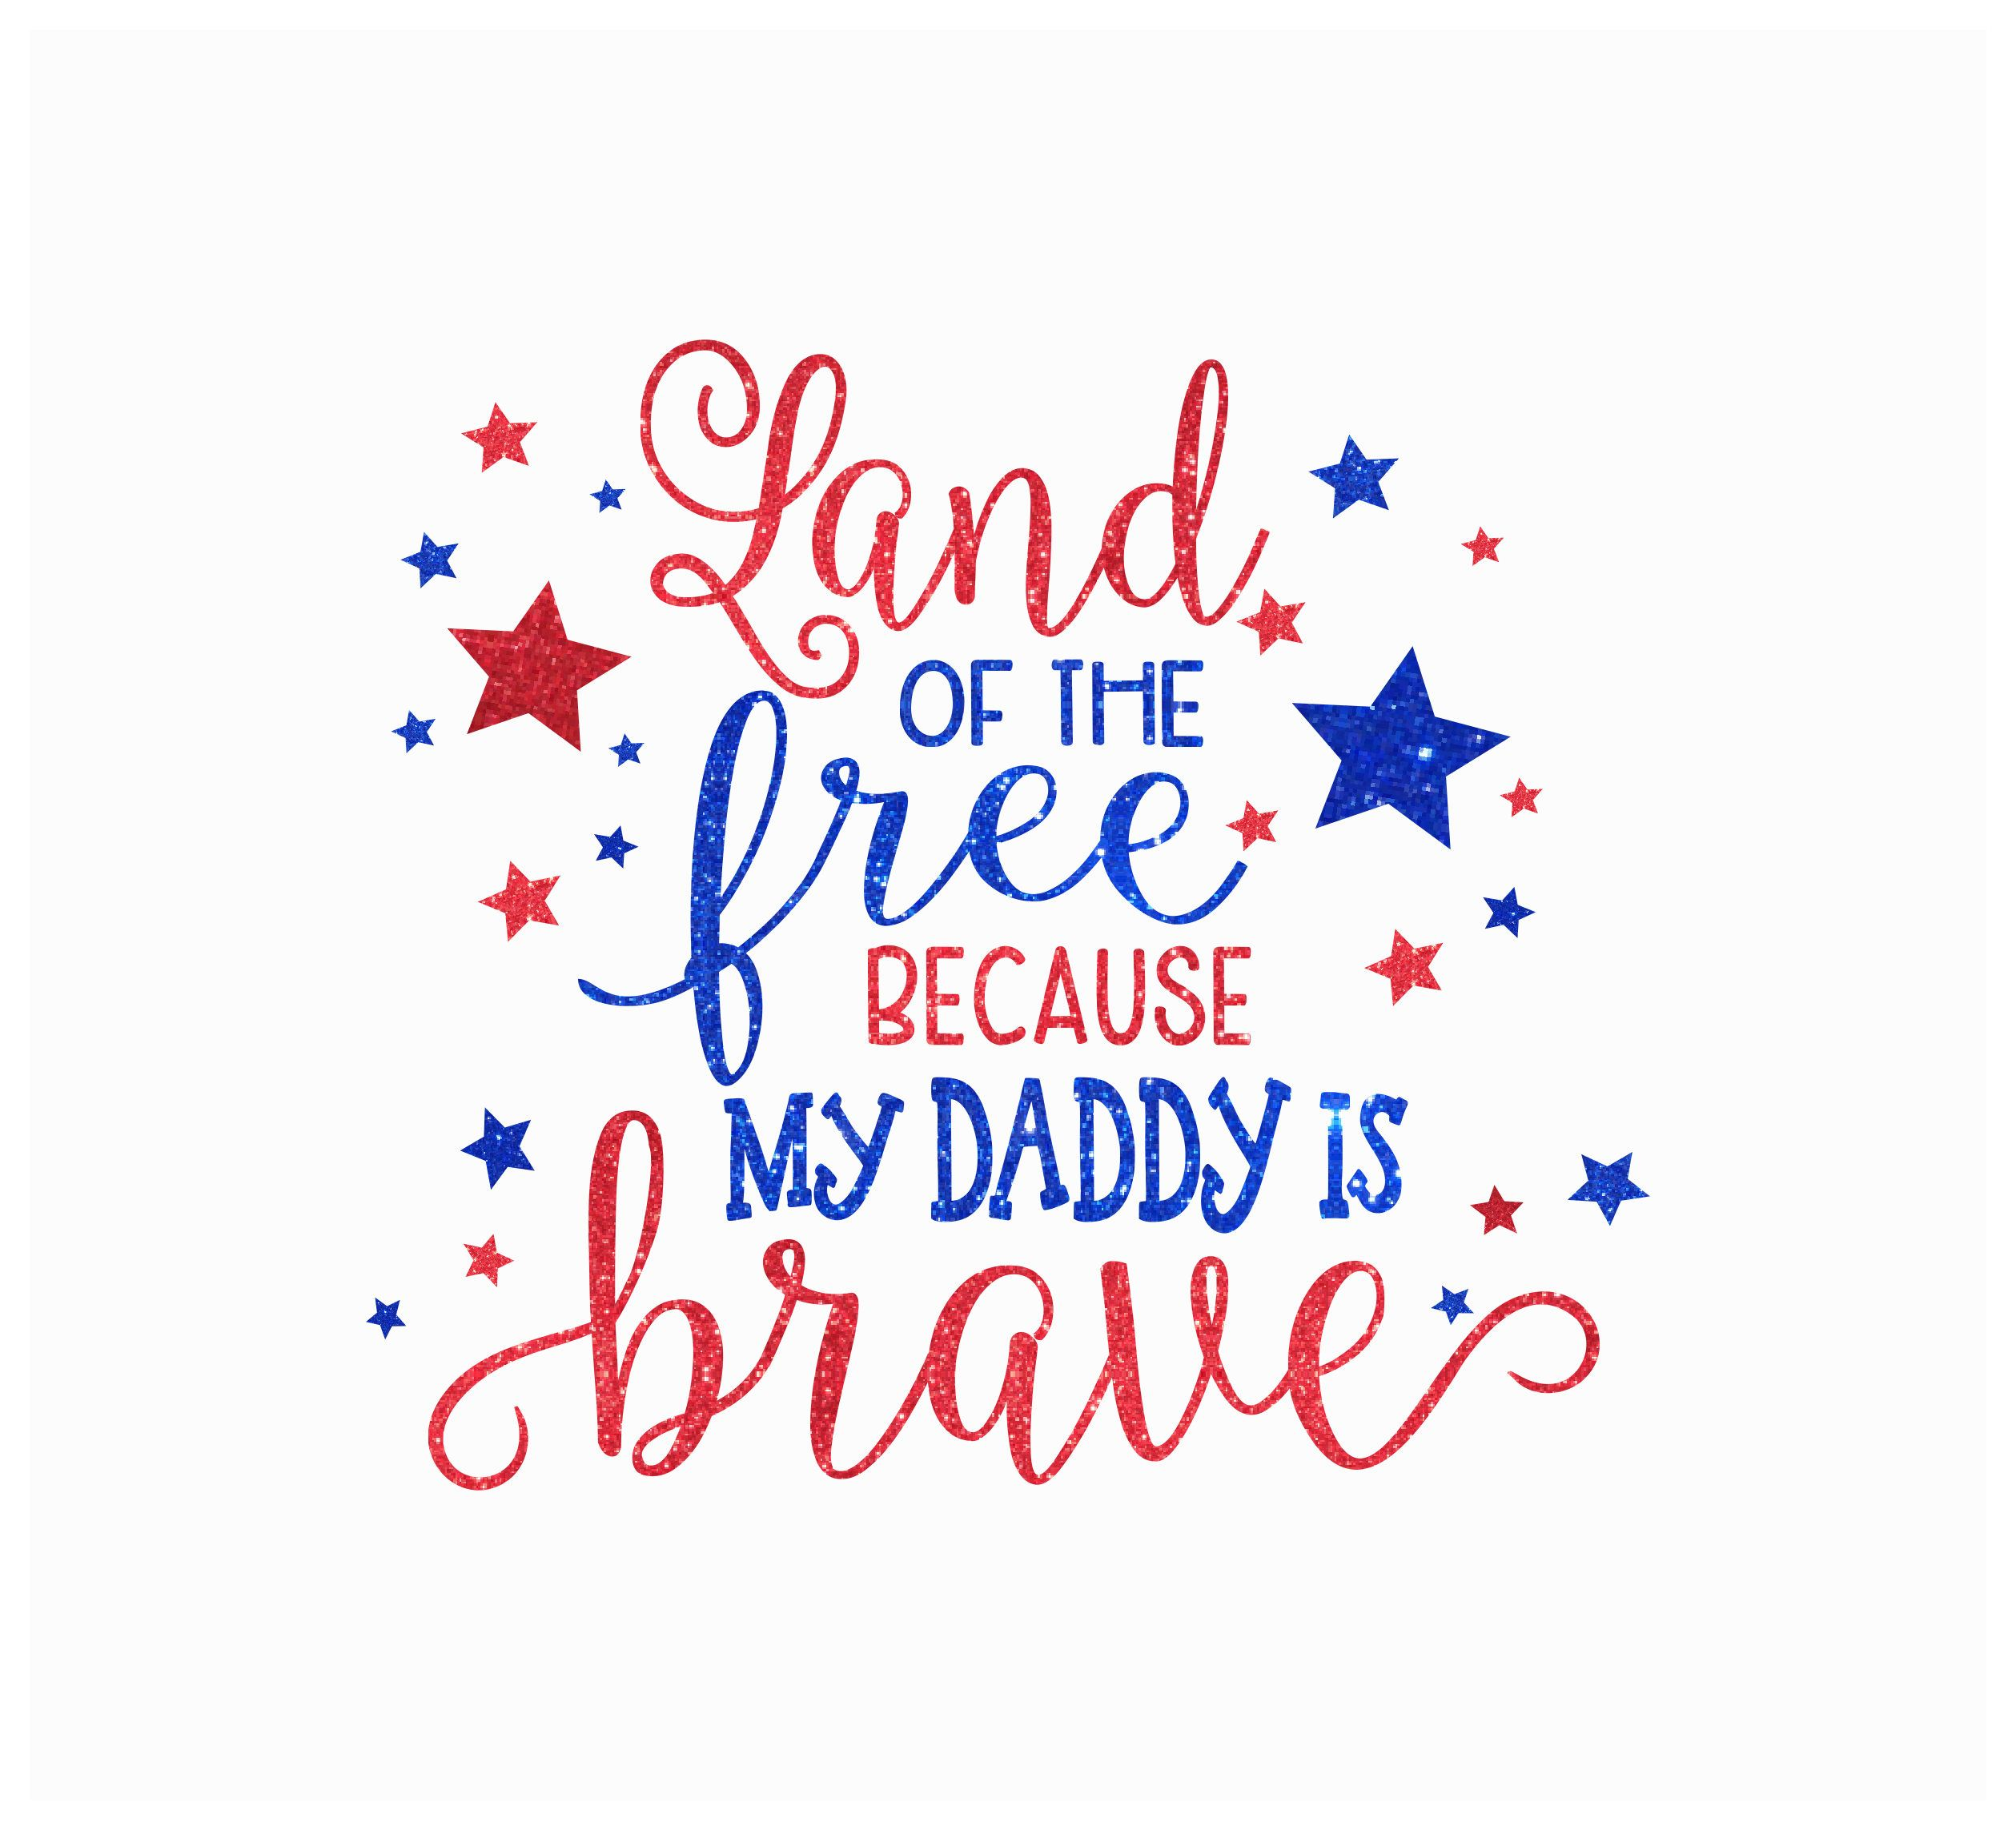 Custom Land Of The Free Because My Daddy Is Brave Husband Mommy Uncle Aunt Glitter Iron On Heat Transf Glitter Heat Transfer Vinyl My Daddy Heat Transfer Vinyl